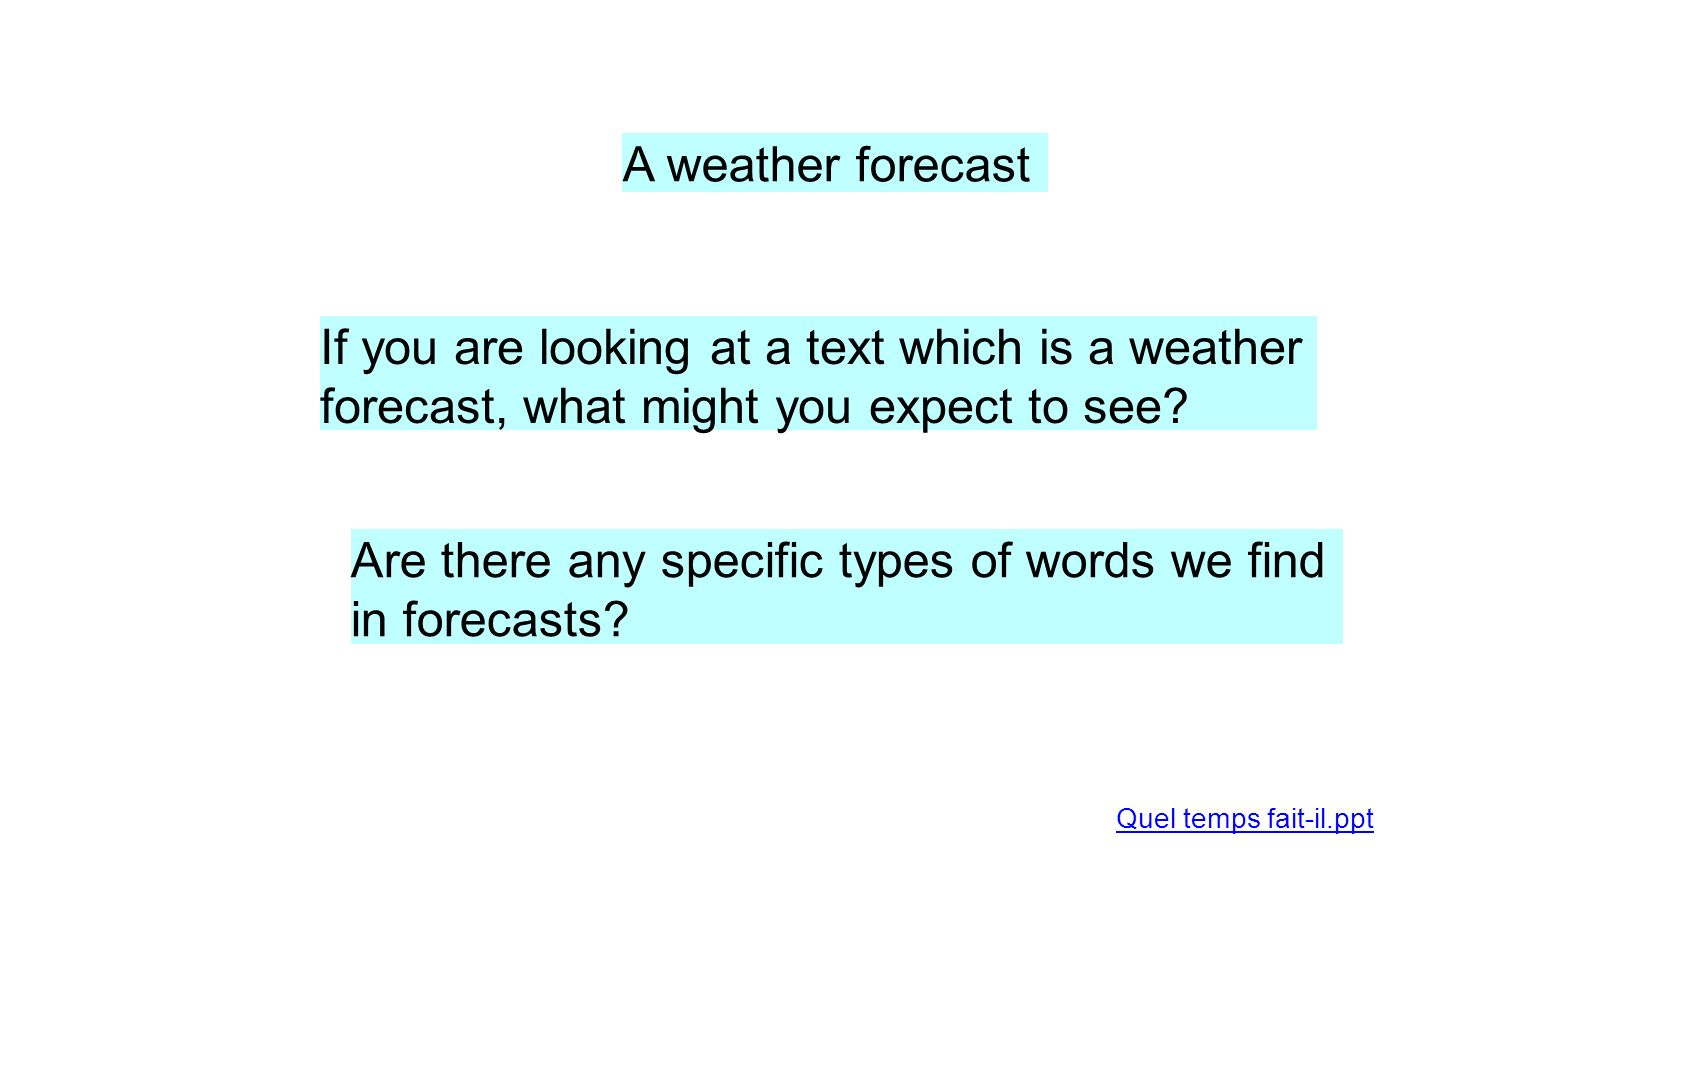 If you are looking at a text which is a weather